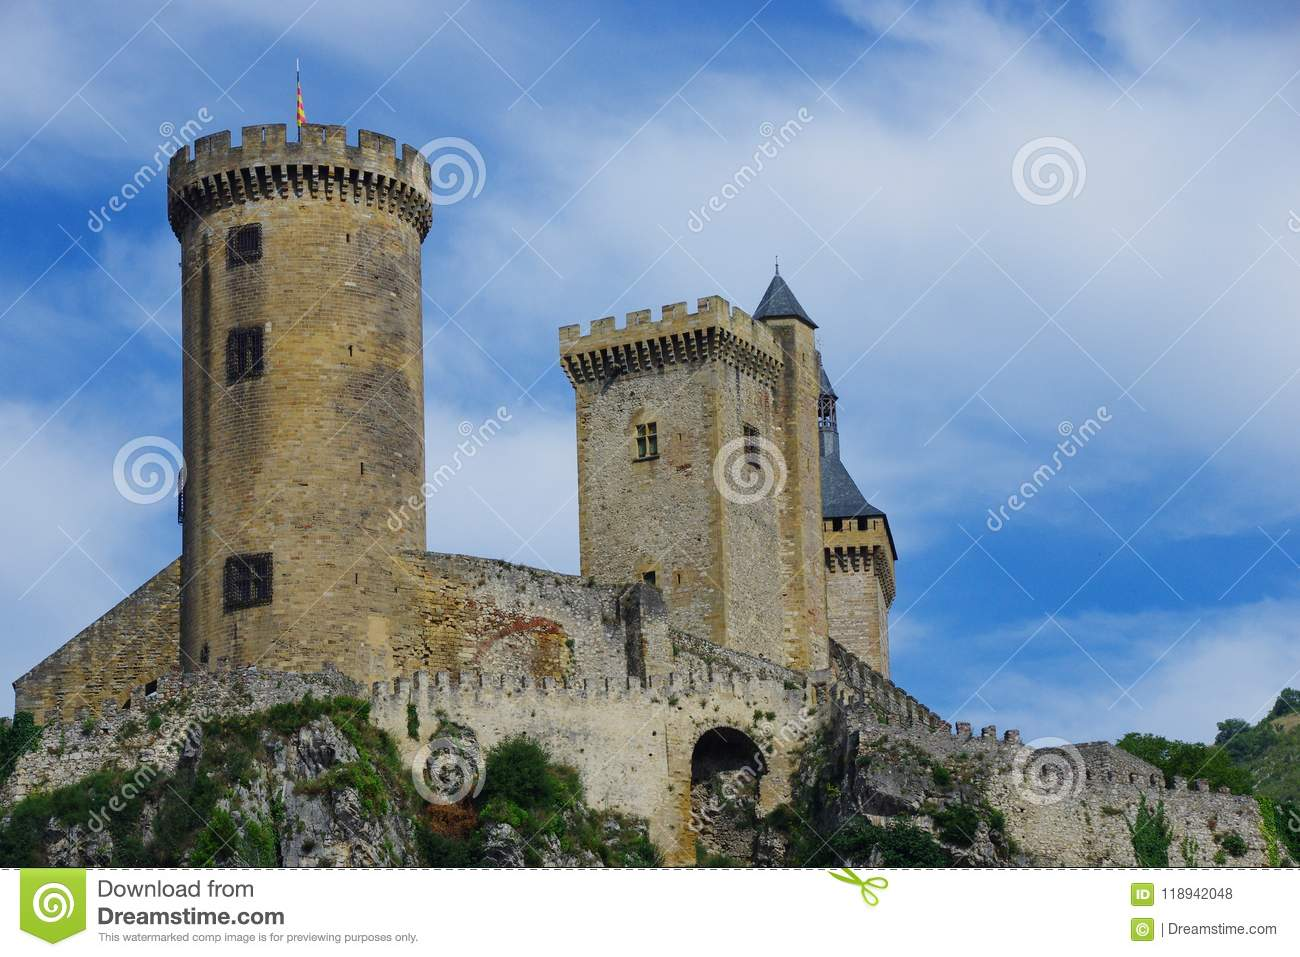 Strong castle of the Middle Ages Foix & x28;France& x29;, is very well preserved.